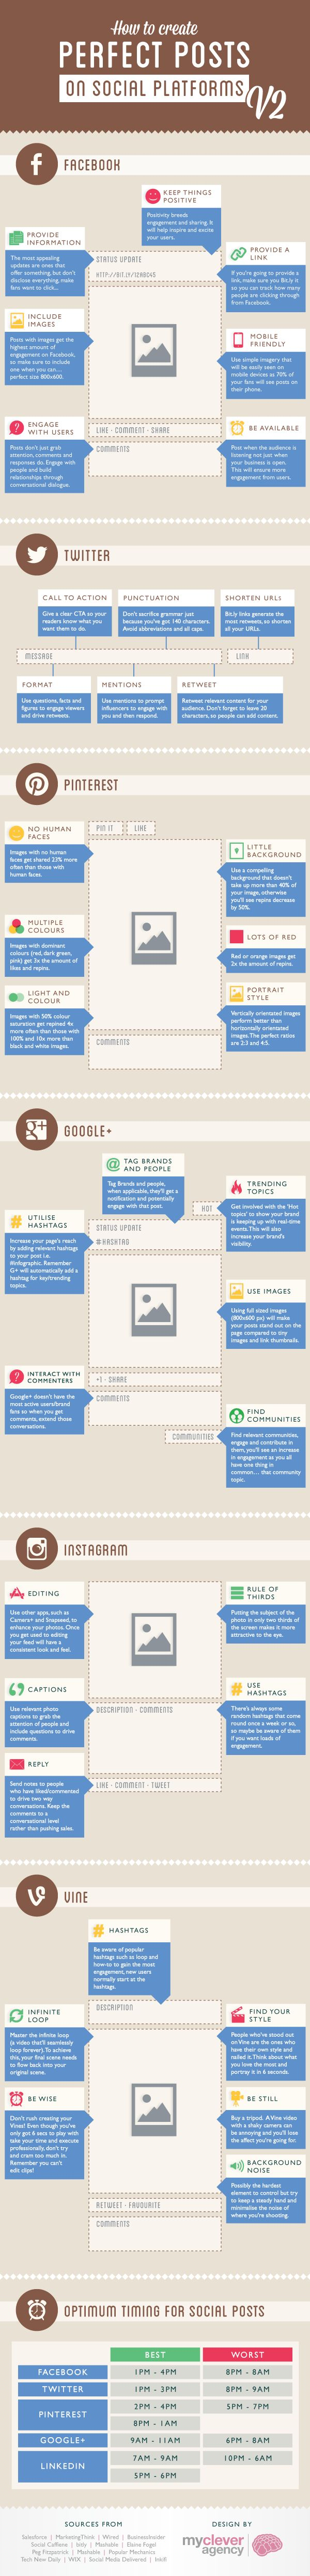 How To Create Perfect Vine, Instagram, Pinterest, Google+, Facebook & Twitter Posts: Version 2 [Infographic] - mycleveragency - Full Service...